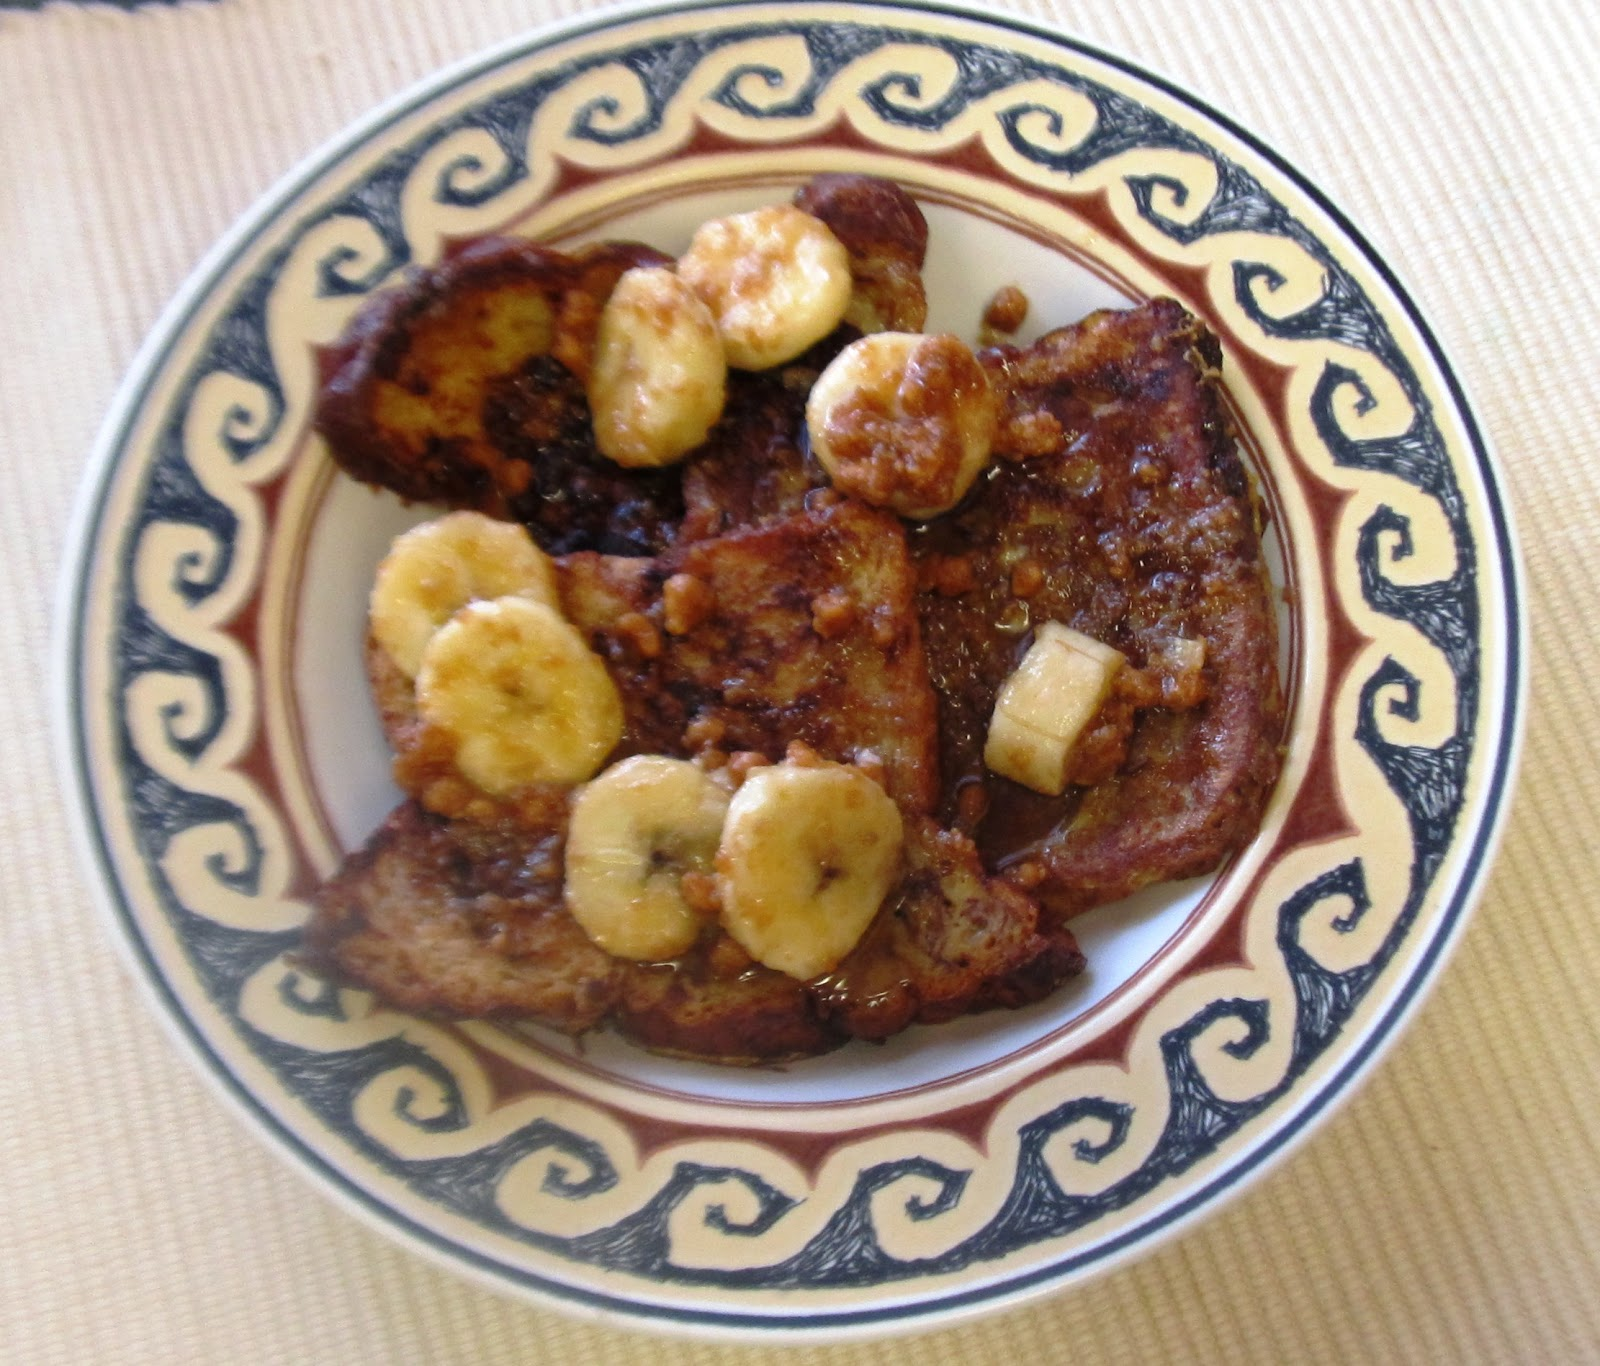 ... ... Healthy & Low Calorie: Peanut Butter Bananas Foster French Toast